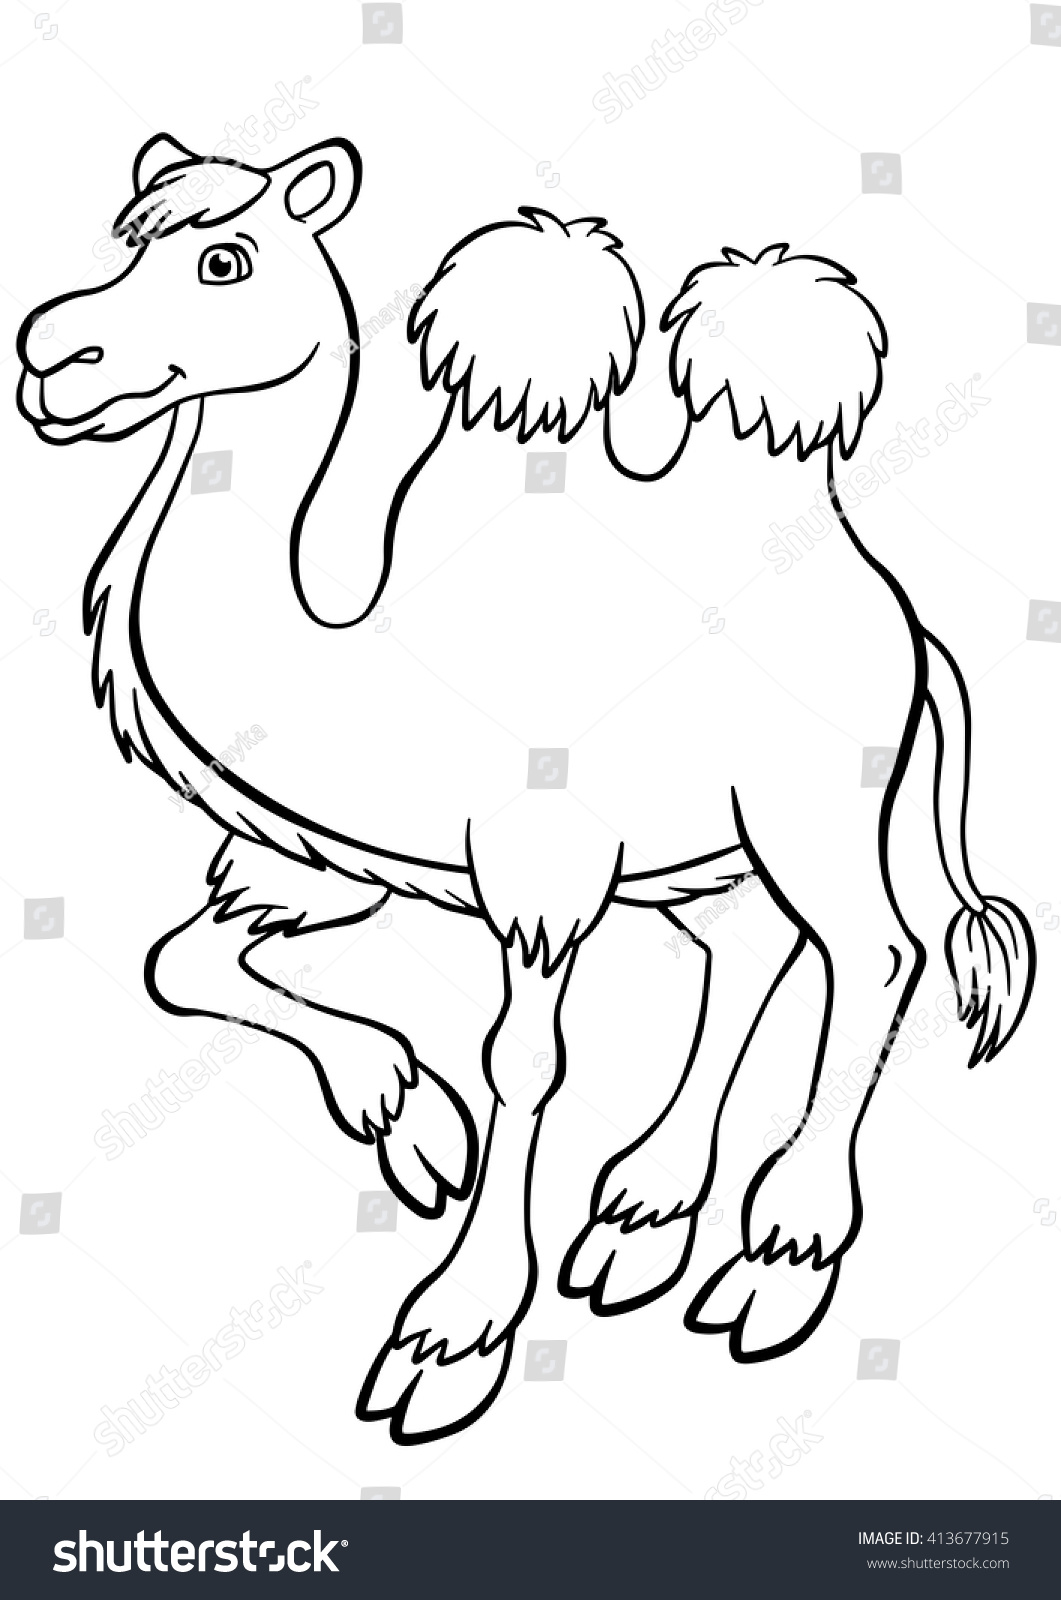 94 coloring pages animals cute baby animals free cute